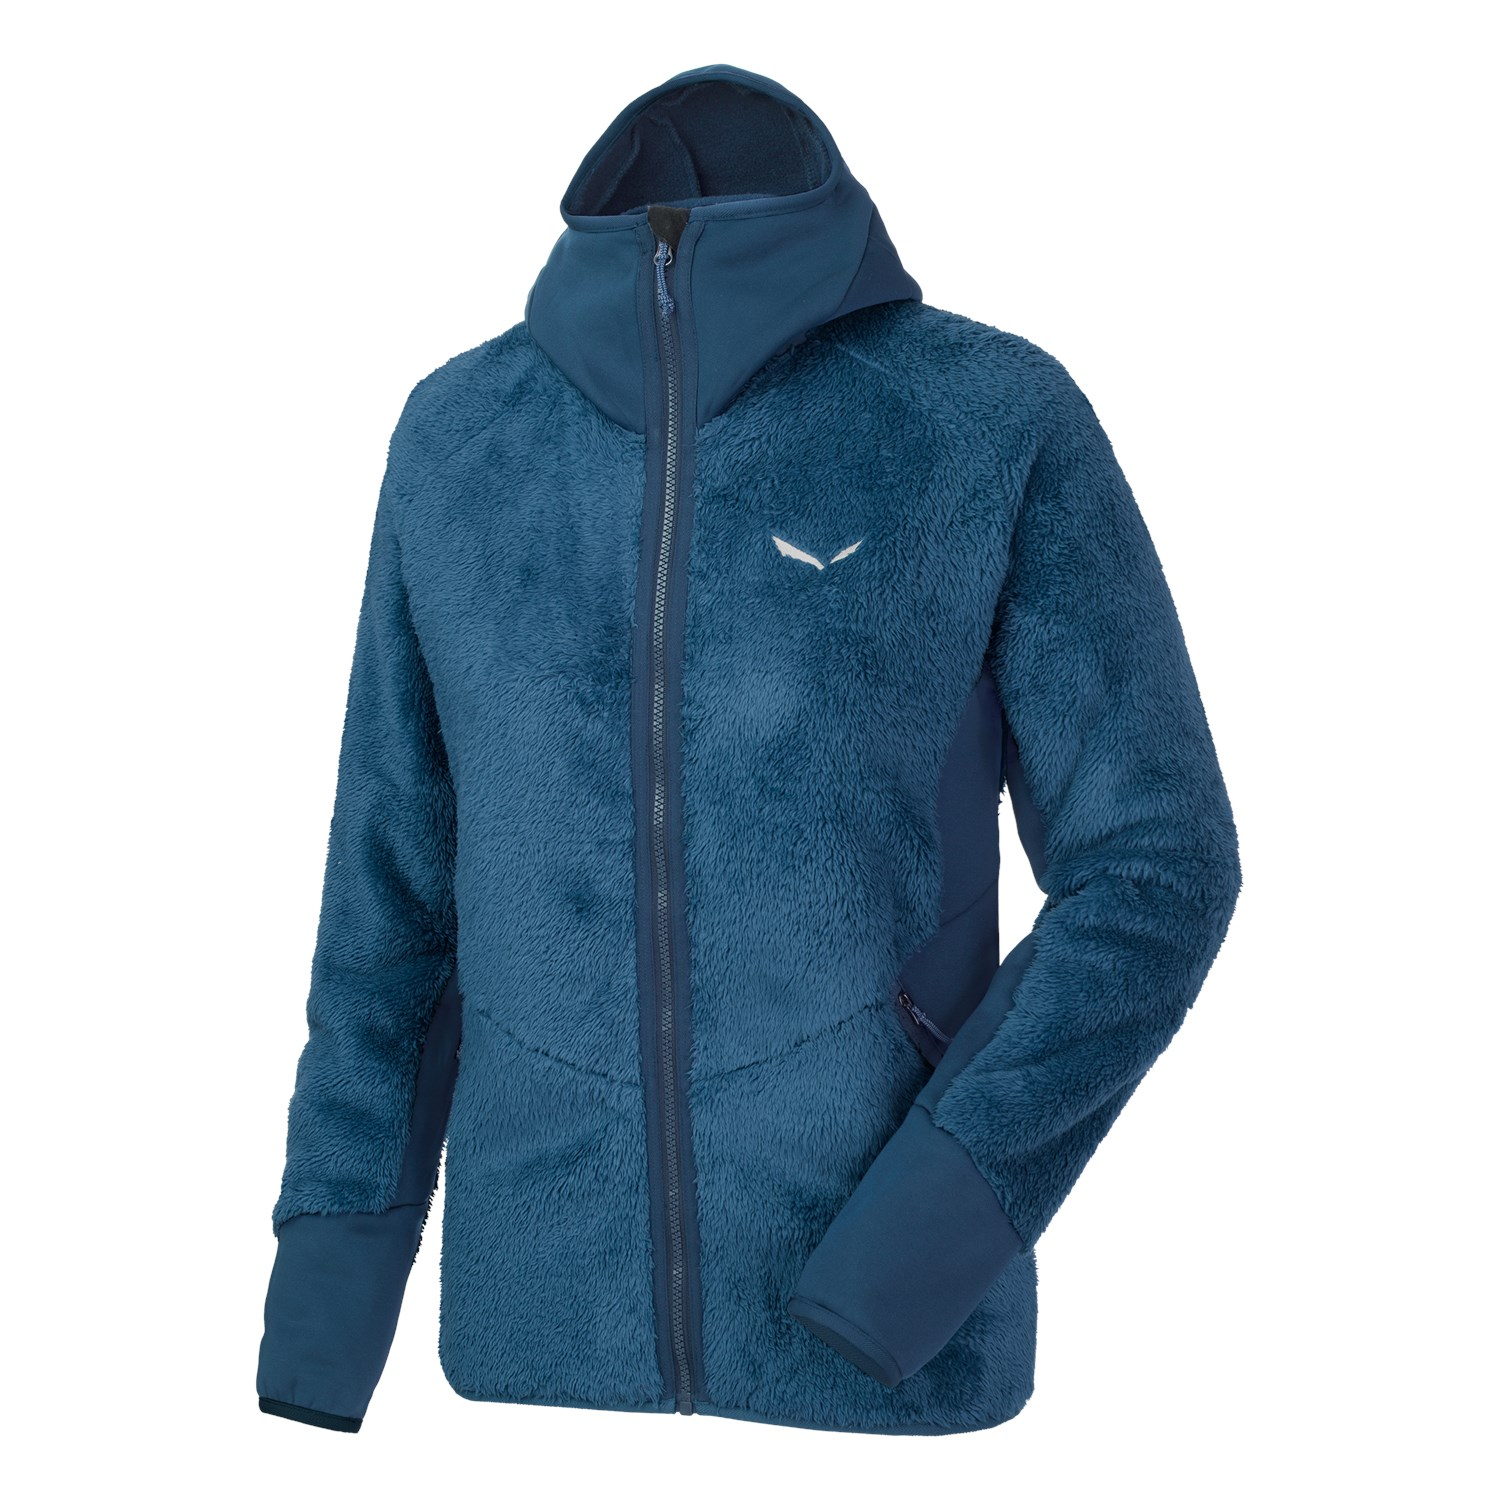 Salewa Damen Puez Warm Polarlite Full-Zip Hoody - blue poseidon - 40